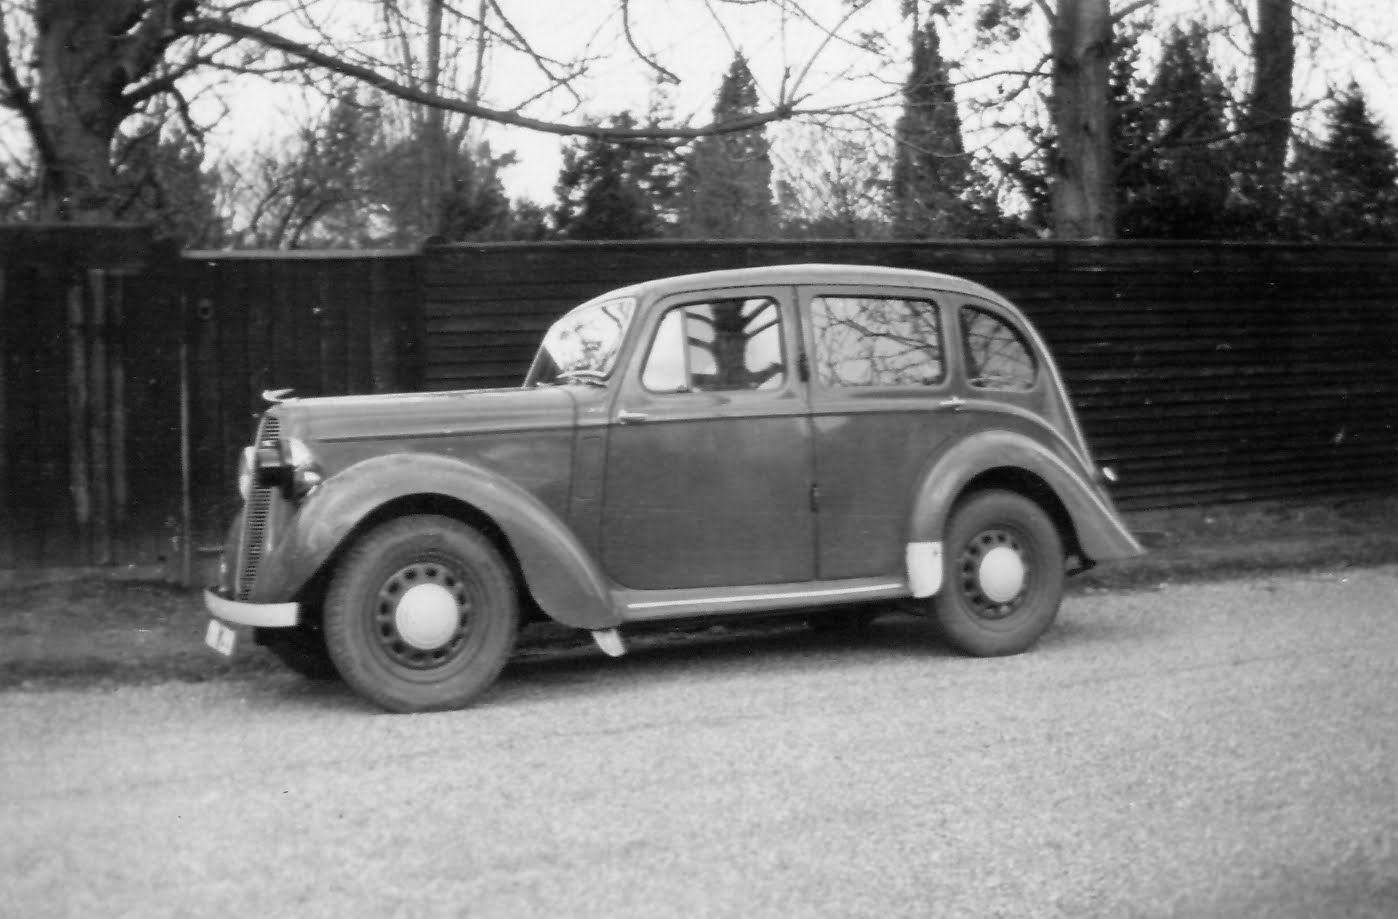 1940 Hillman Minx Phase 1 Carsaddiction Com